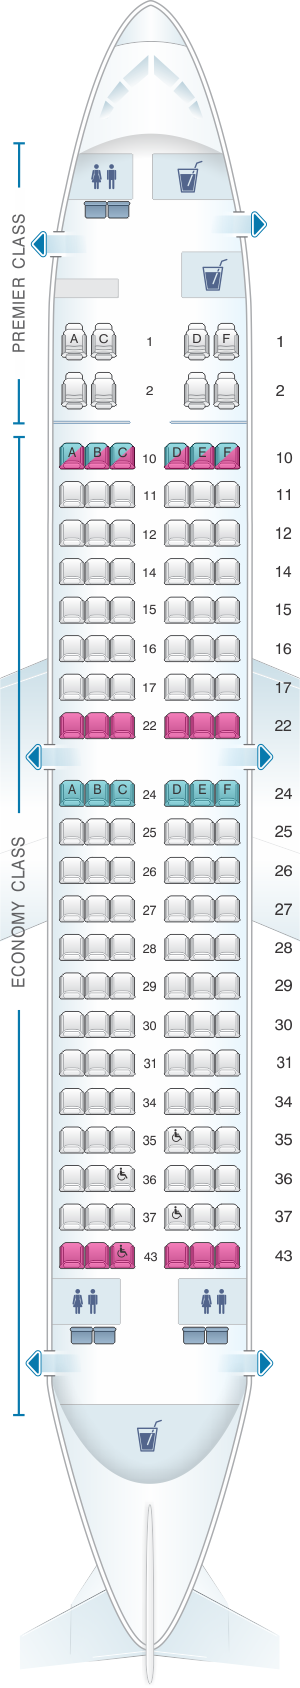 Seat map for Jet Airways Boeing B737 700 134PAX